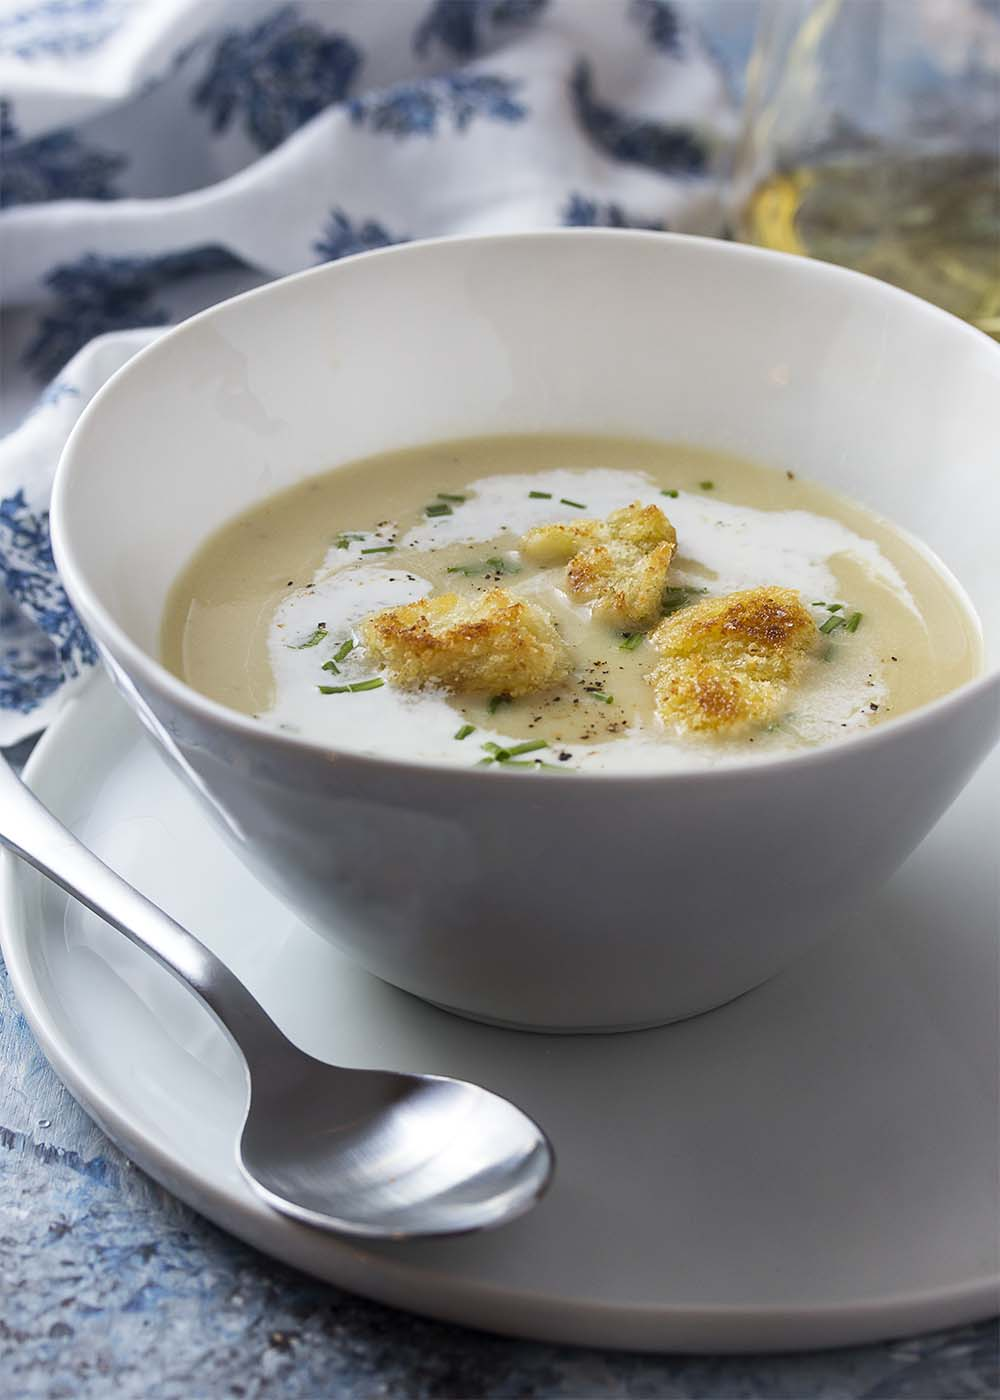 Close up of a white bowl of potato leek soup with crispy croutons garnishing the top.